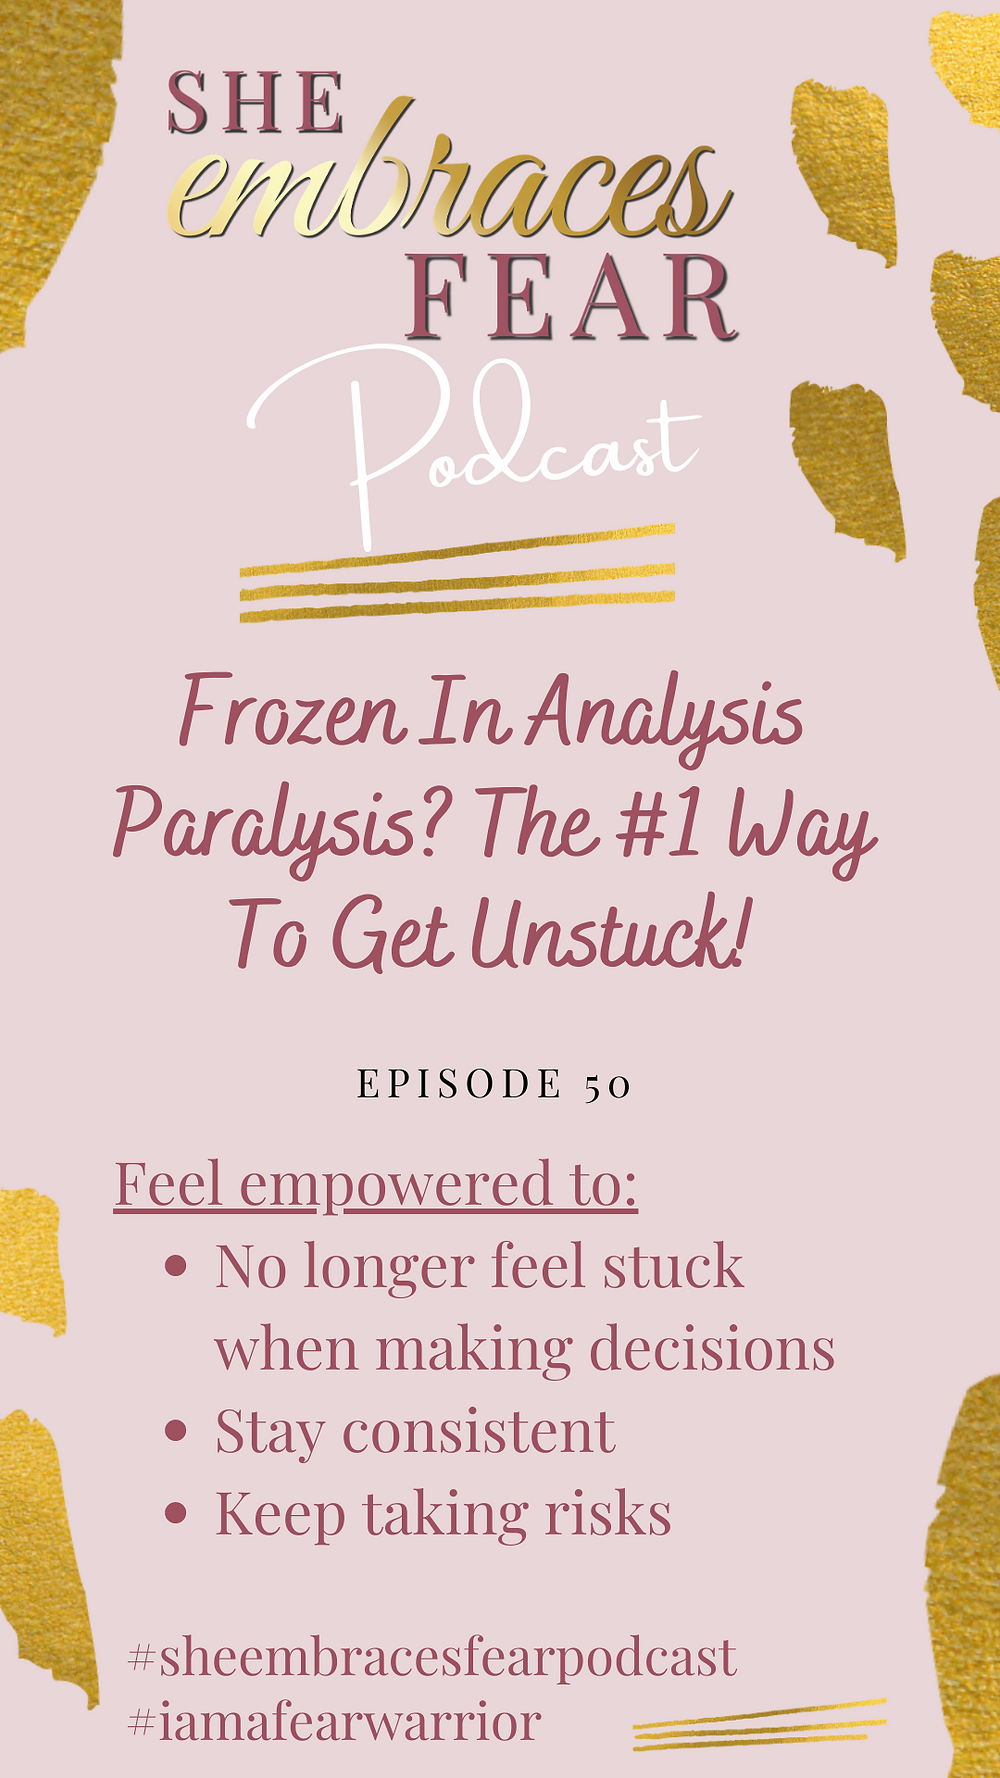 Focused on a goal but stuck in inaction? Frozen with analysis paralysis? Learn how to stay consistent and keep taking risks! The #1 way to get UNSTUCK!